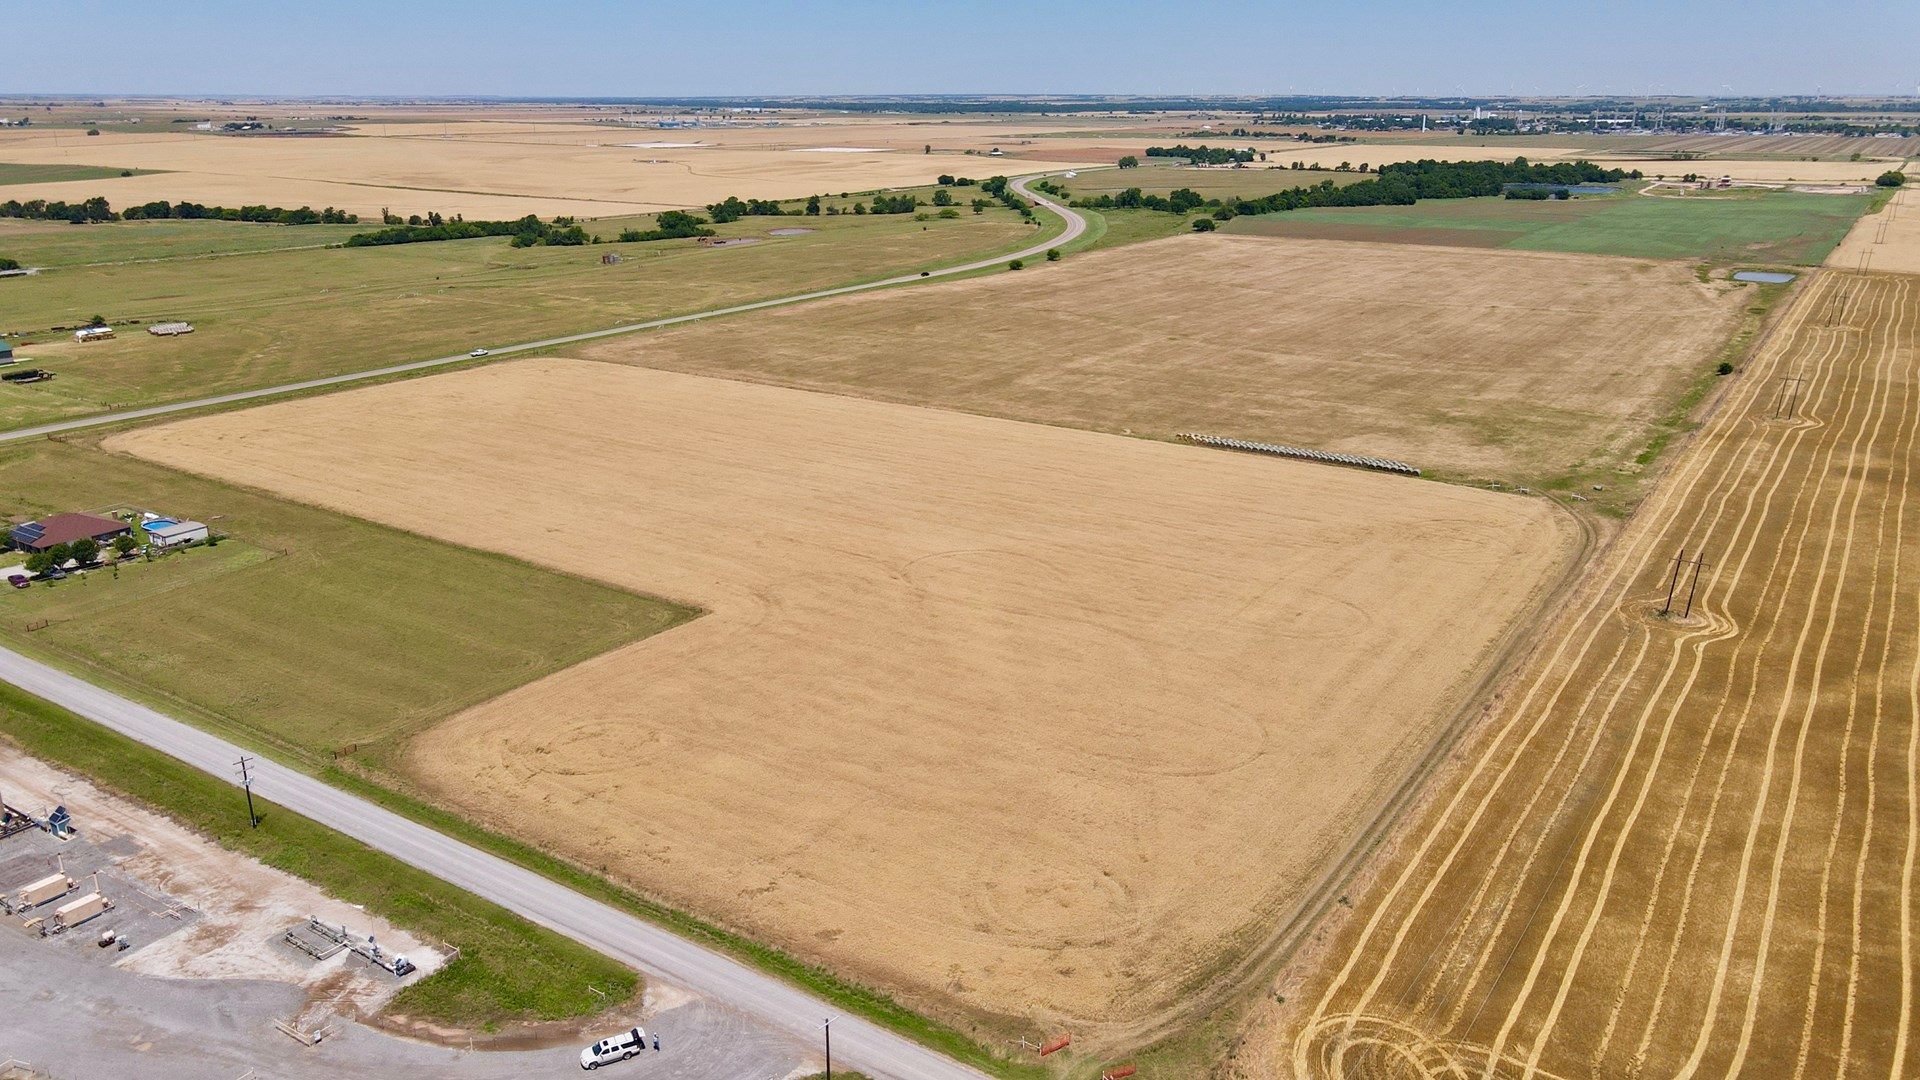 LAND PROPERTY FOR SALE CALUMET CANADIAN COUNTY OKLAHOMA